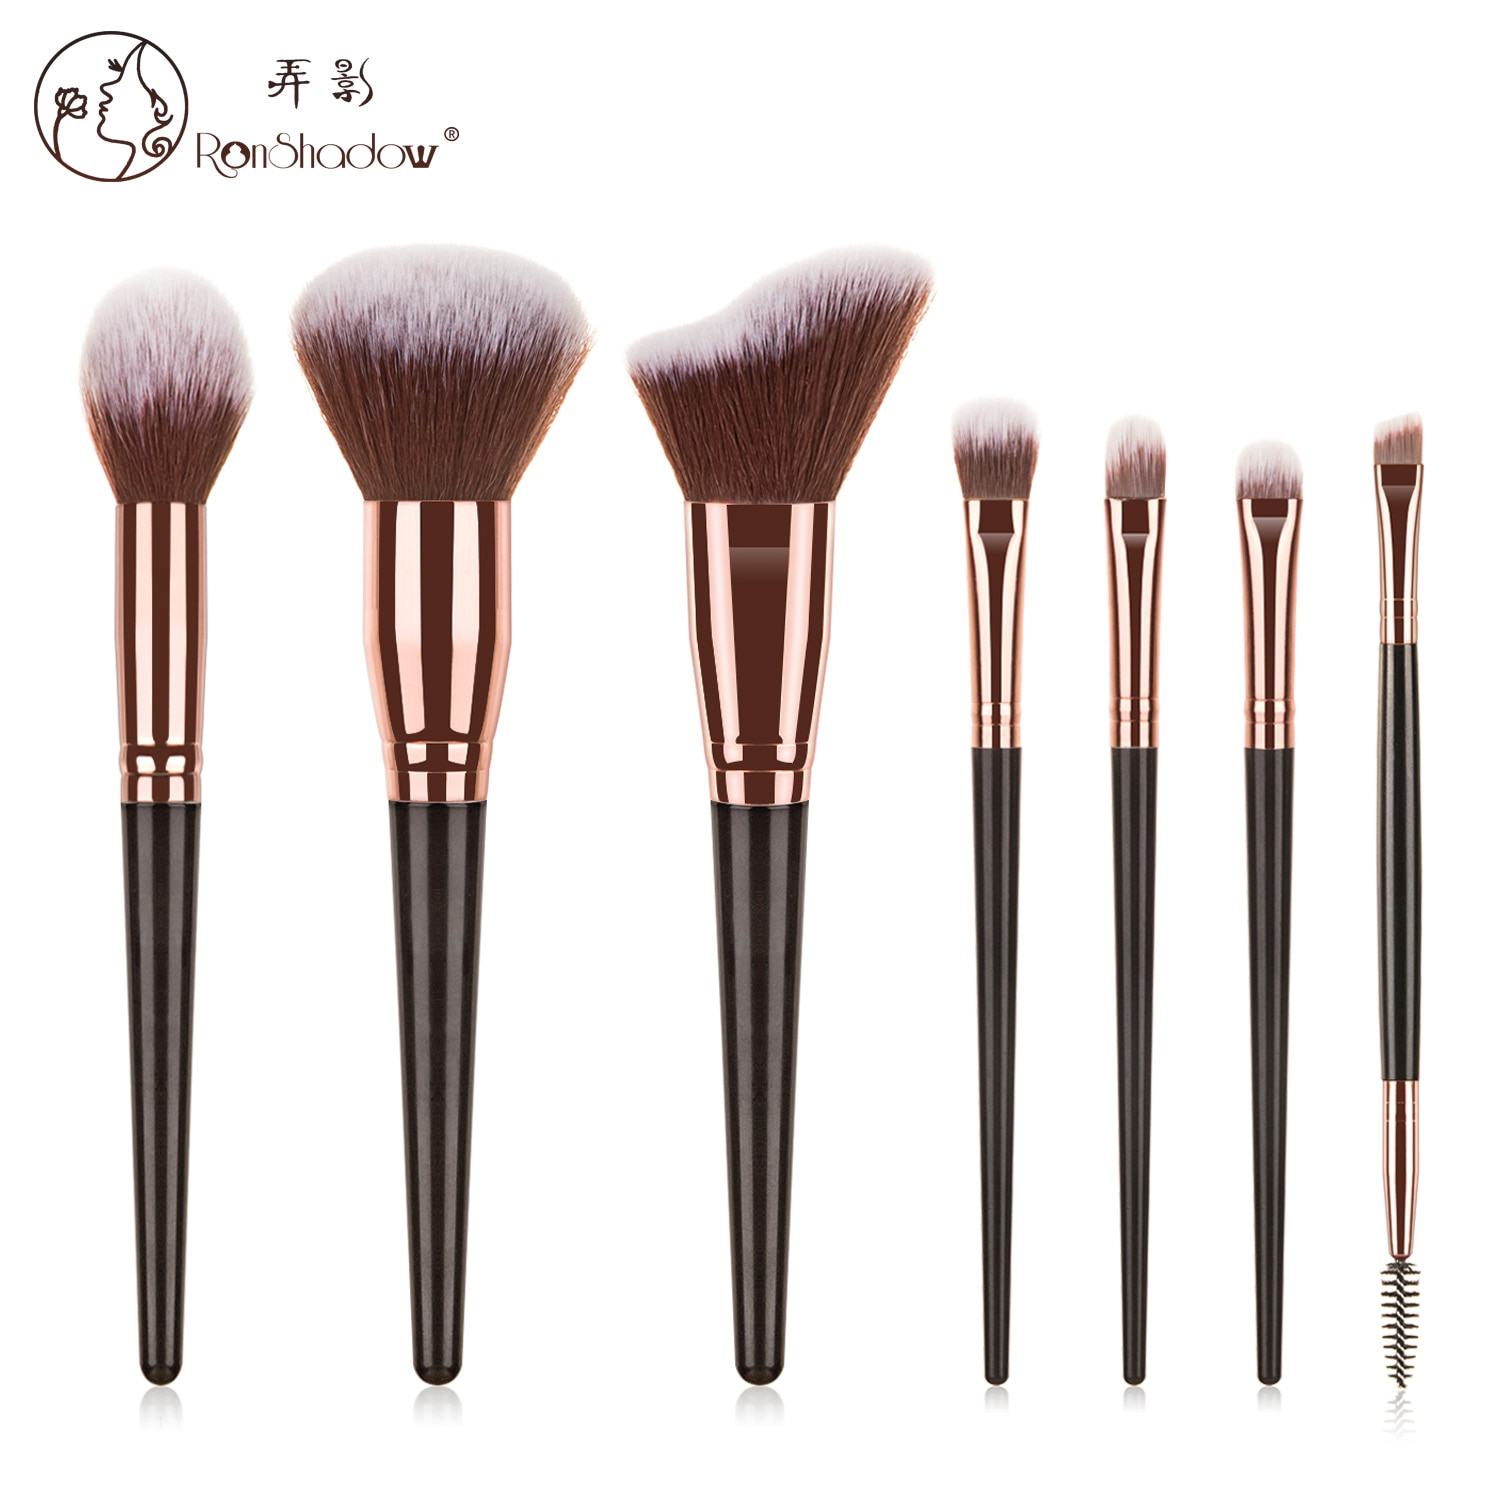 Ronshadow 7/10/15pcs Makeup Brushes Set Foundation Eyeshadow Highlighter Concealer Blusher Make Up Cosmetics Beauty Brush Tool